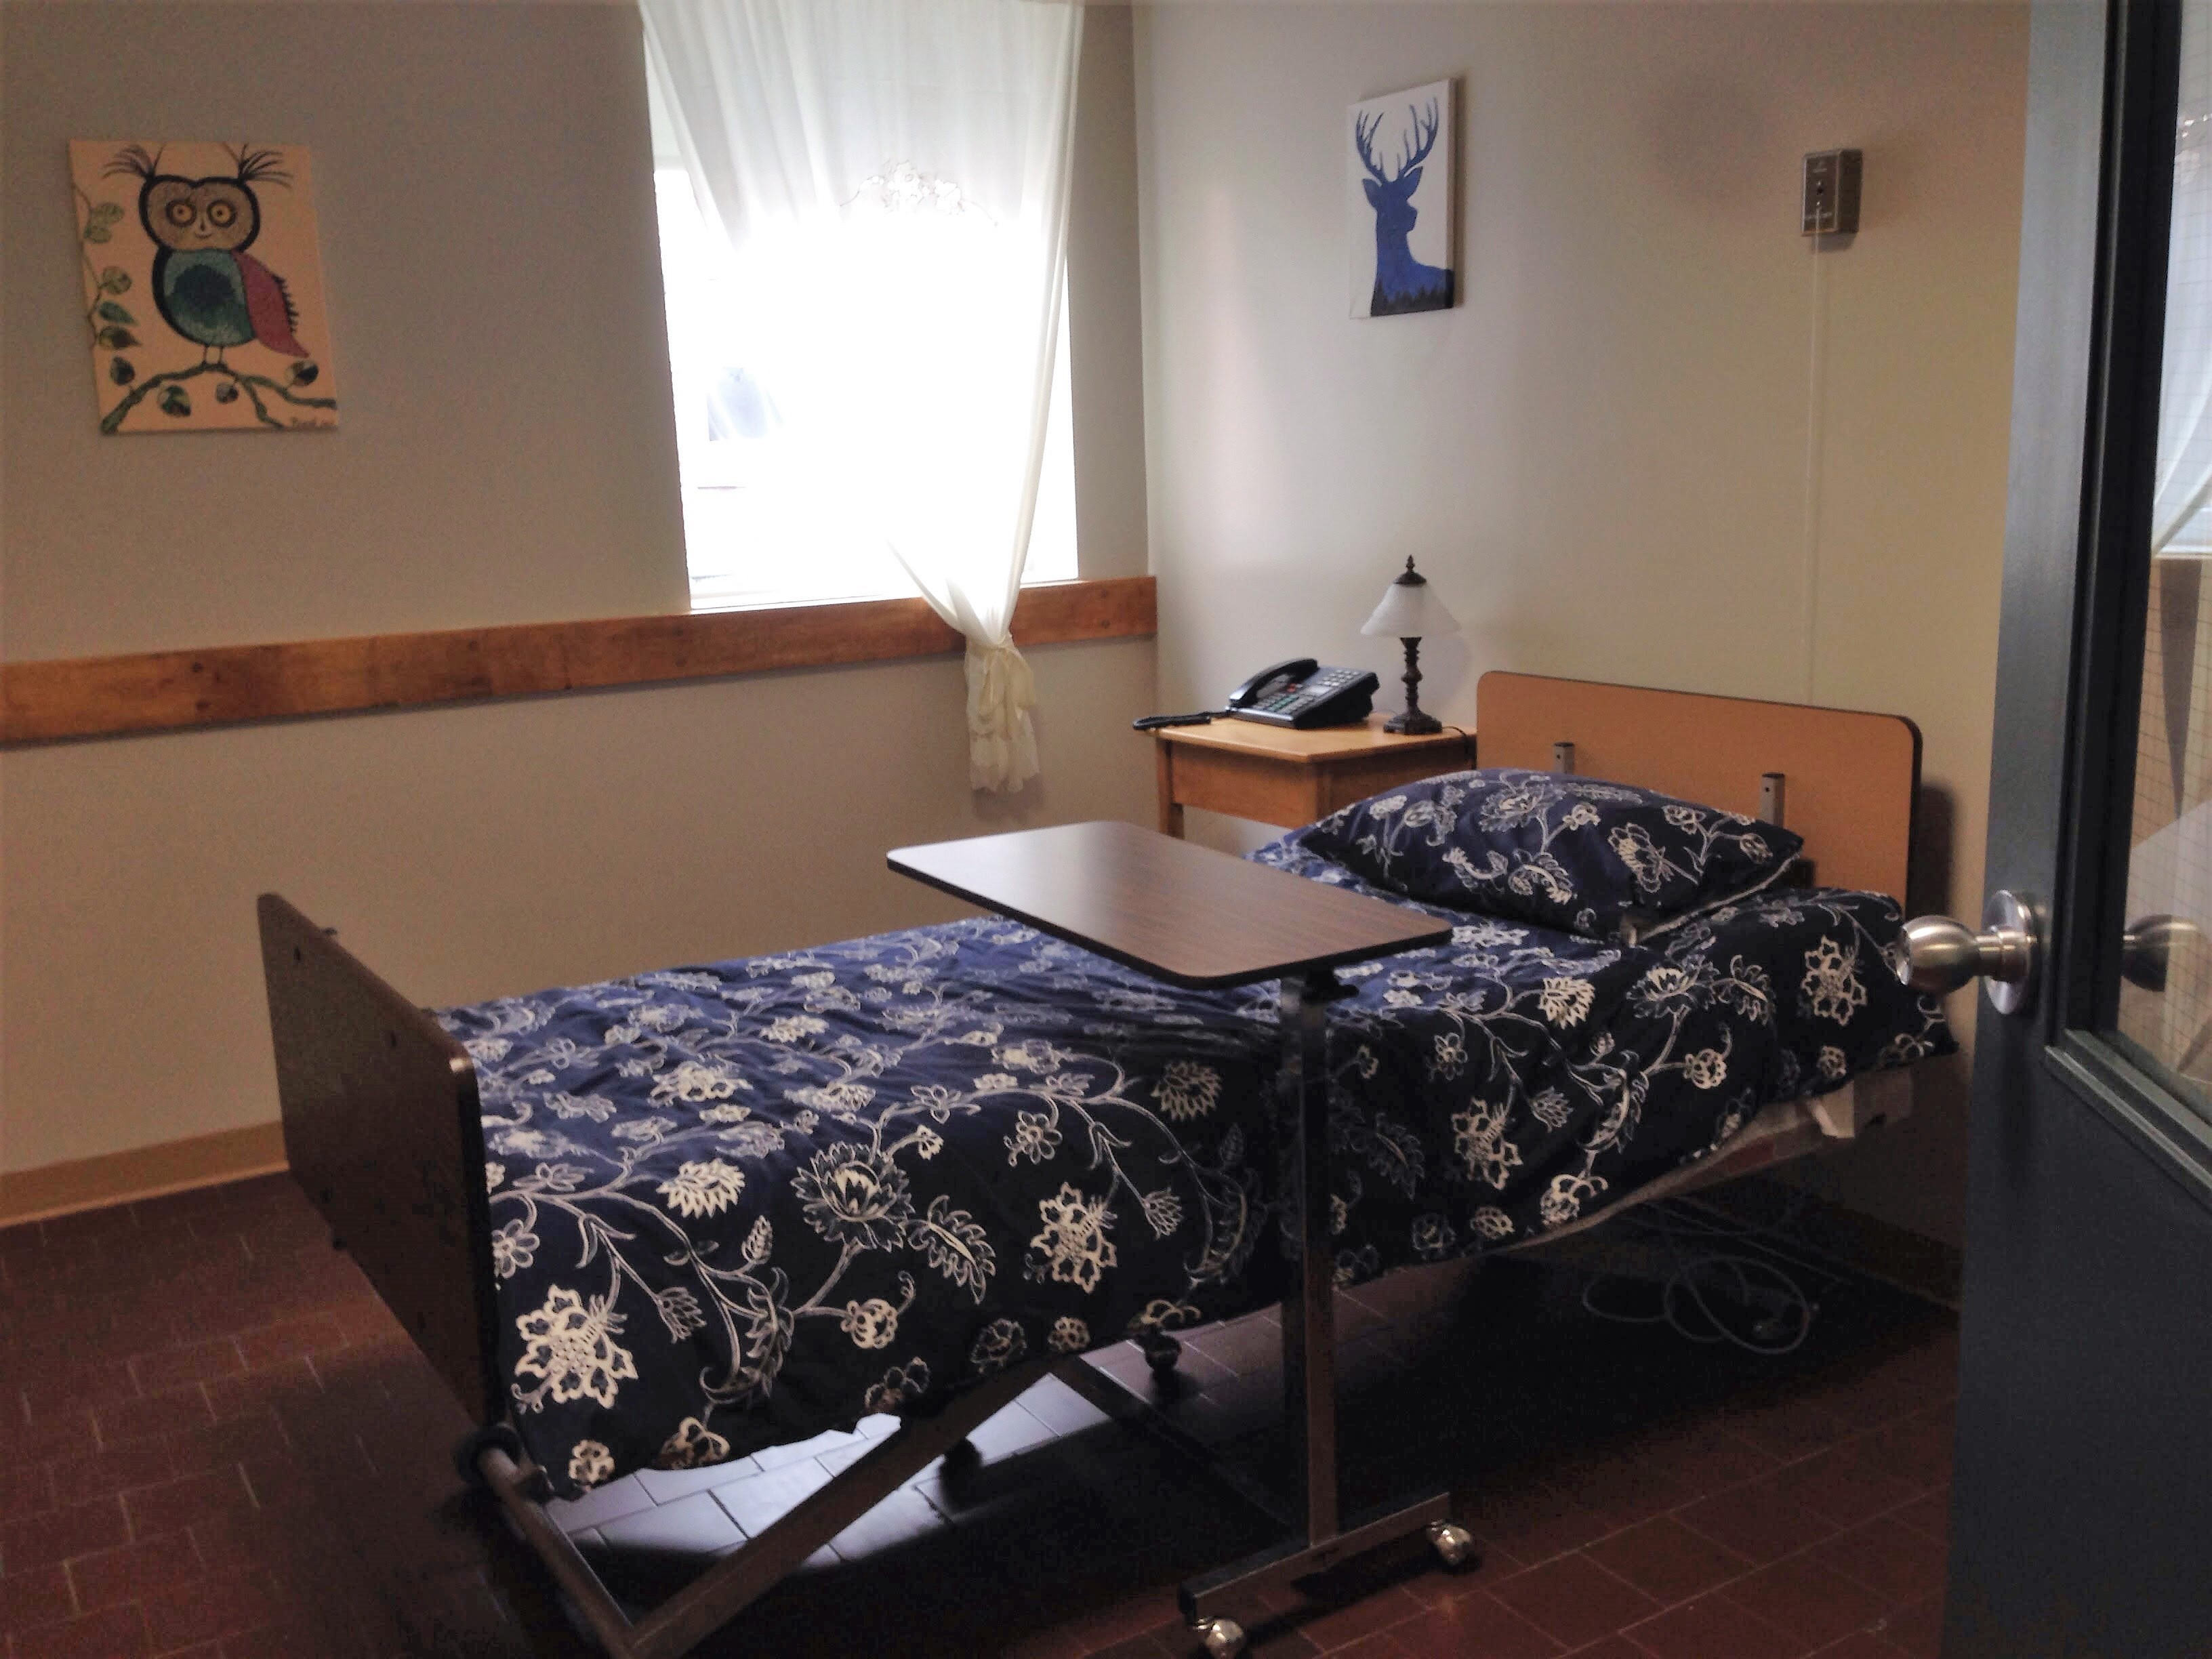 palliative care room homeless